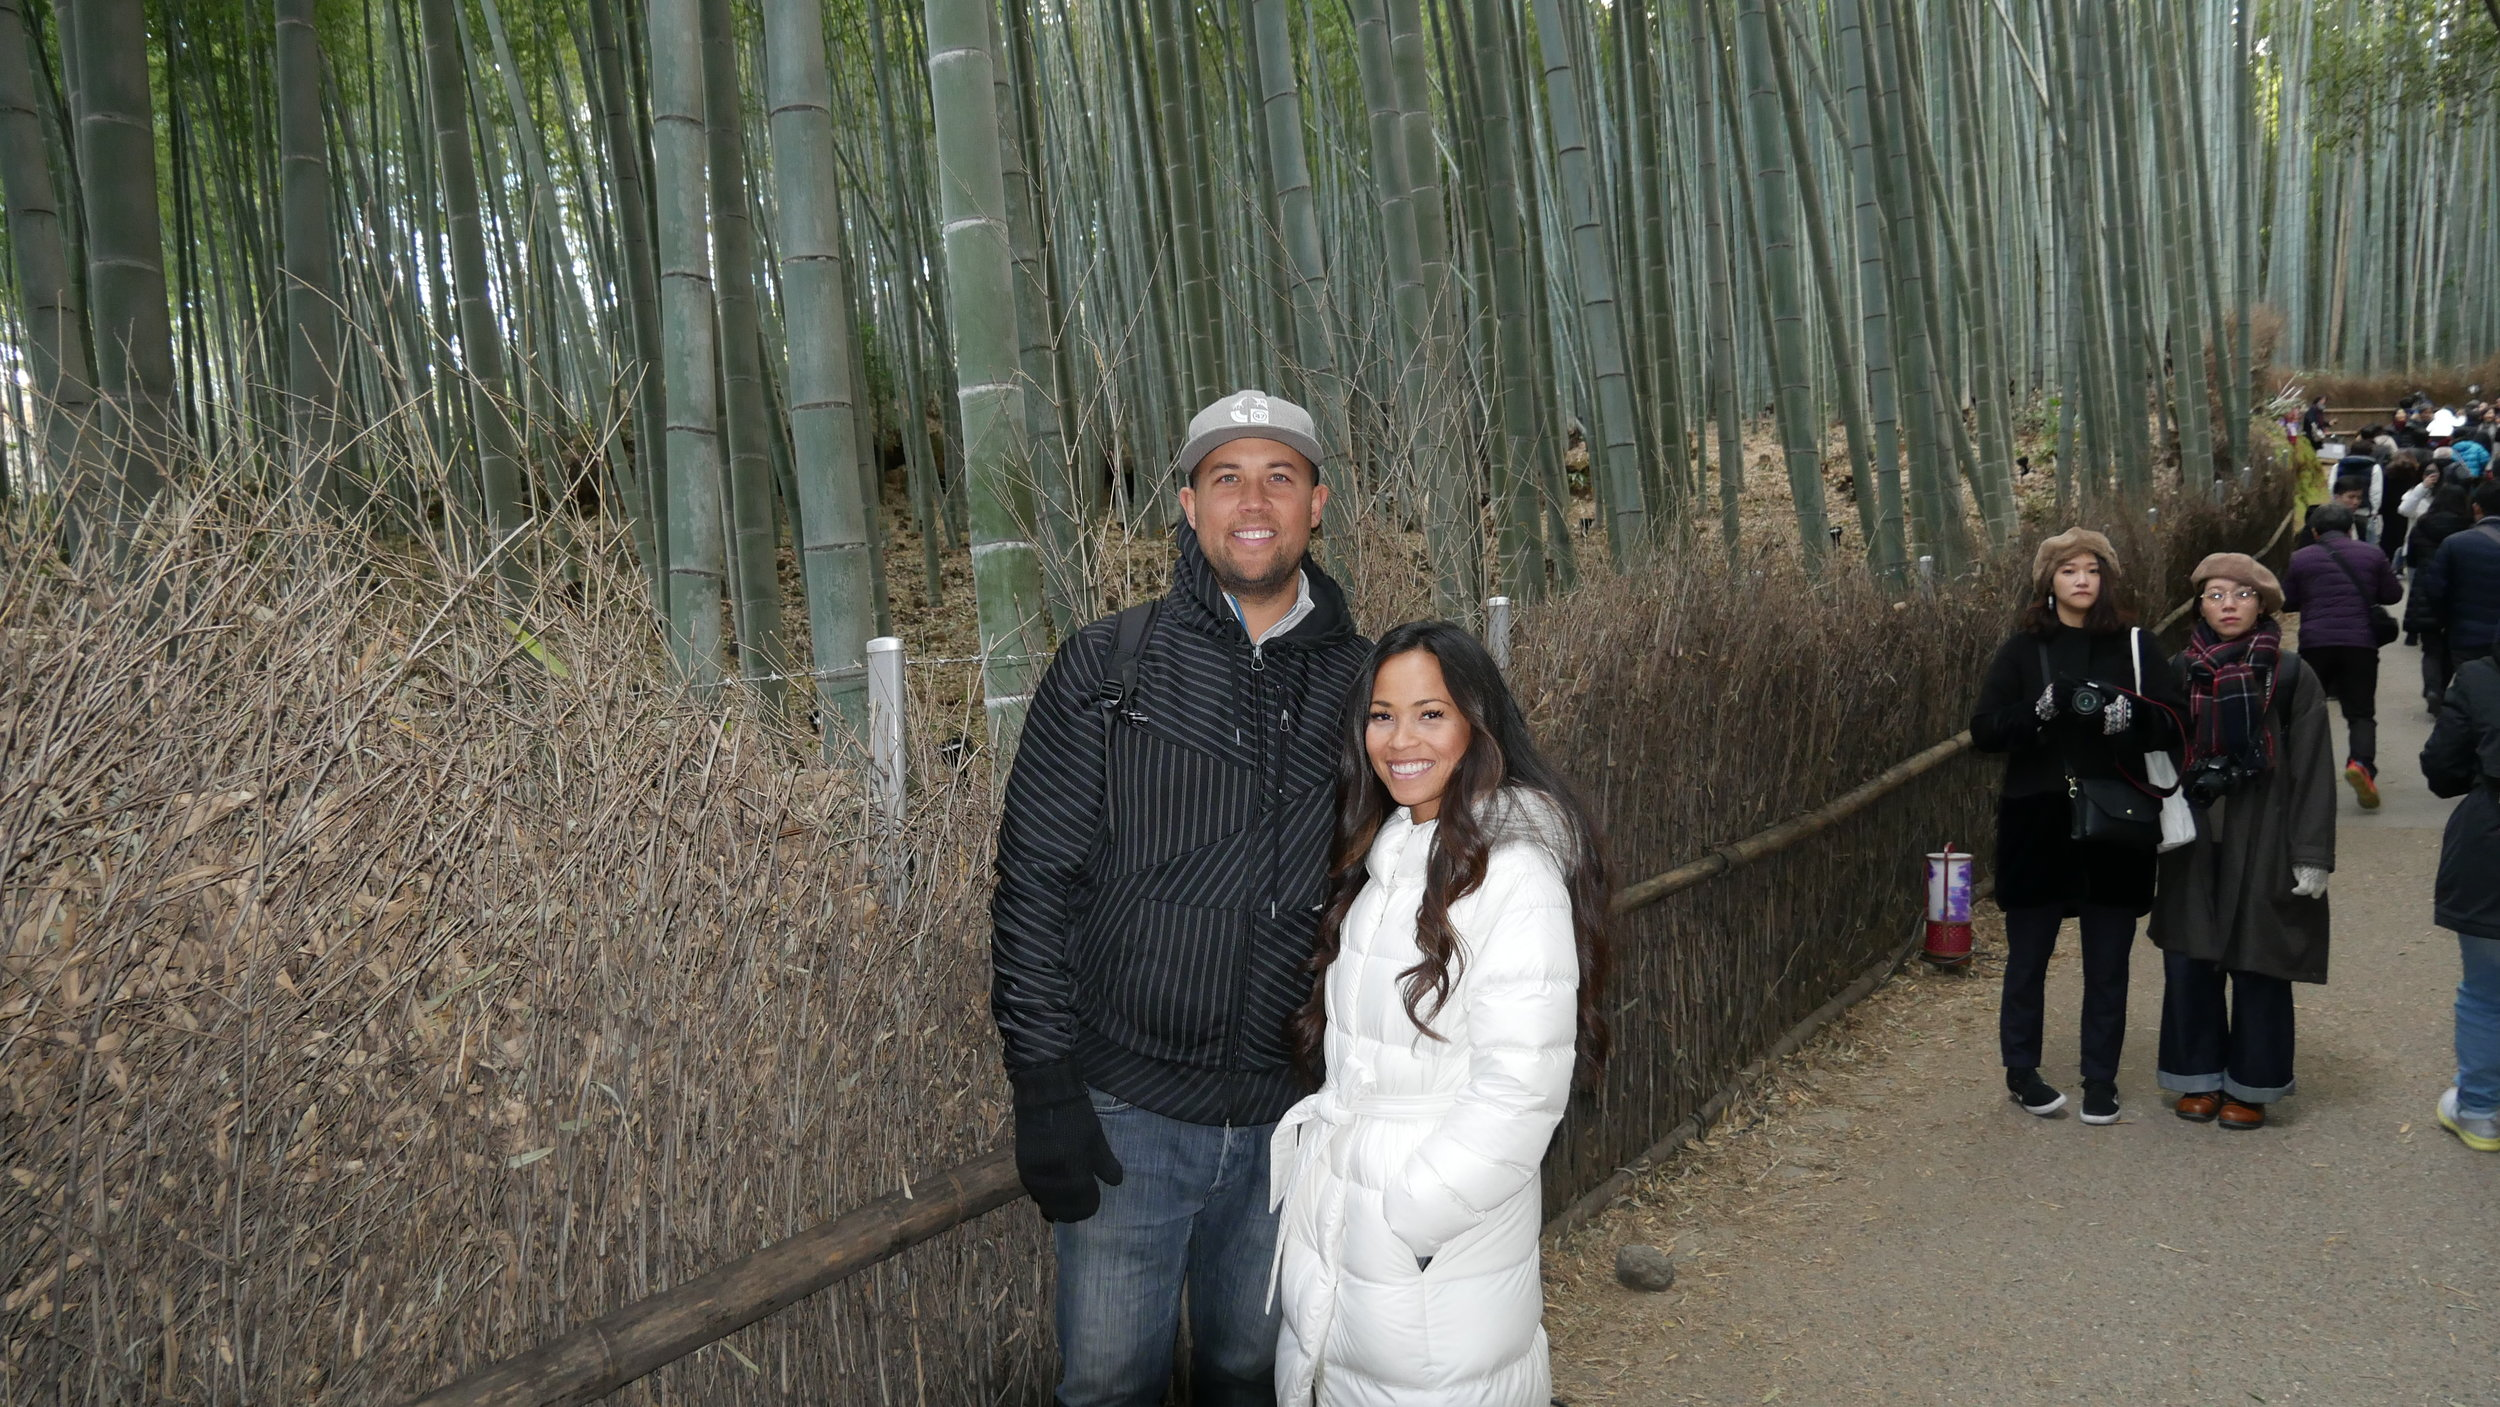 ARASHIYAMA BAMBOO FOREST - The infamous bamboo forest! Everyone has seen the pictures so of course it was something that was at the top of our Kyoto bucket list! It is just so crazy how tall and mesmerizing these bamboo trees were and it really is a beautiful quaint forest to walk through.My one and only complaint about this forest (granted we did go in the middle of the day) but it was just so busy with people. It was very hard (but not impossible) to get a picture without other fellow tourists photo-bombing.I have seen that there are other bamboo forests in Japan that are a little less busy... But if you are in the middle of Kyoto, this is free and definitely a must-see!